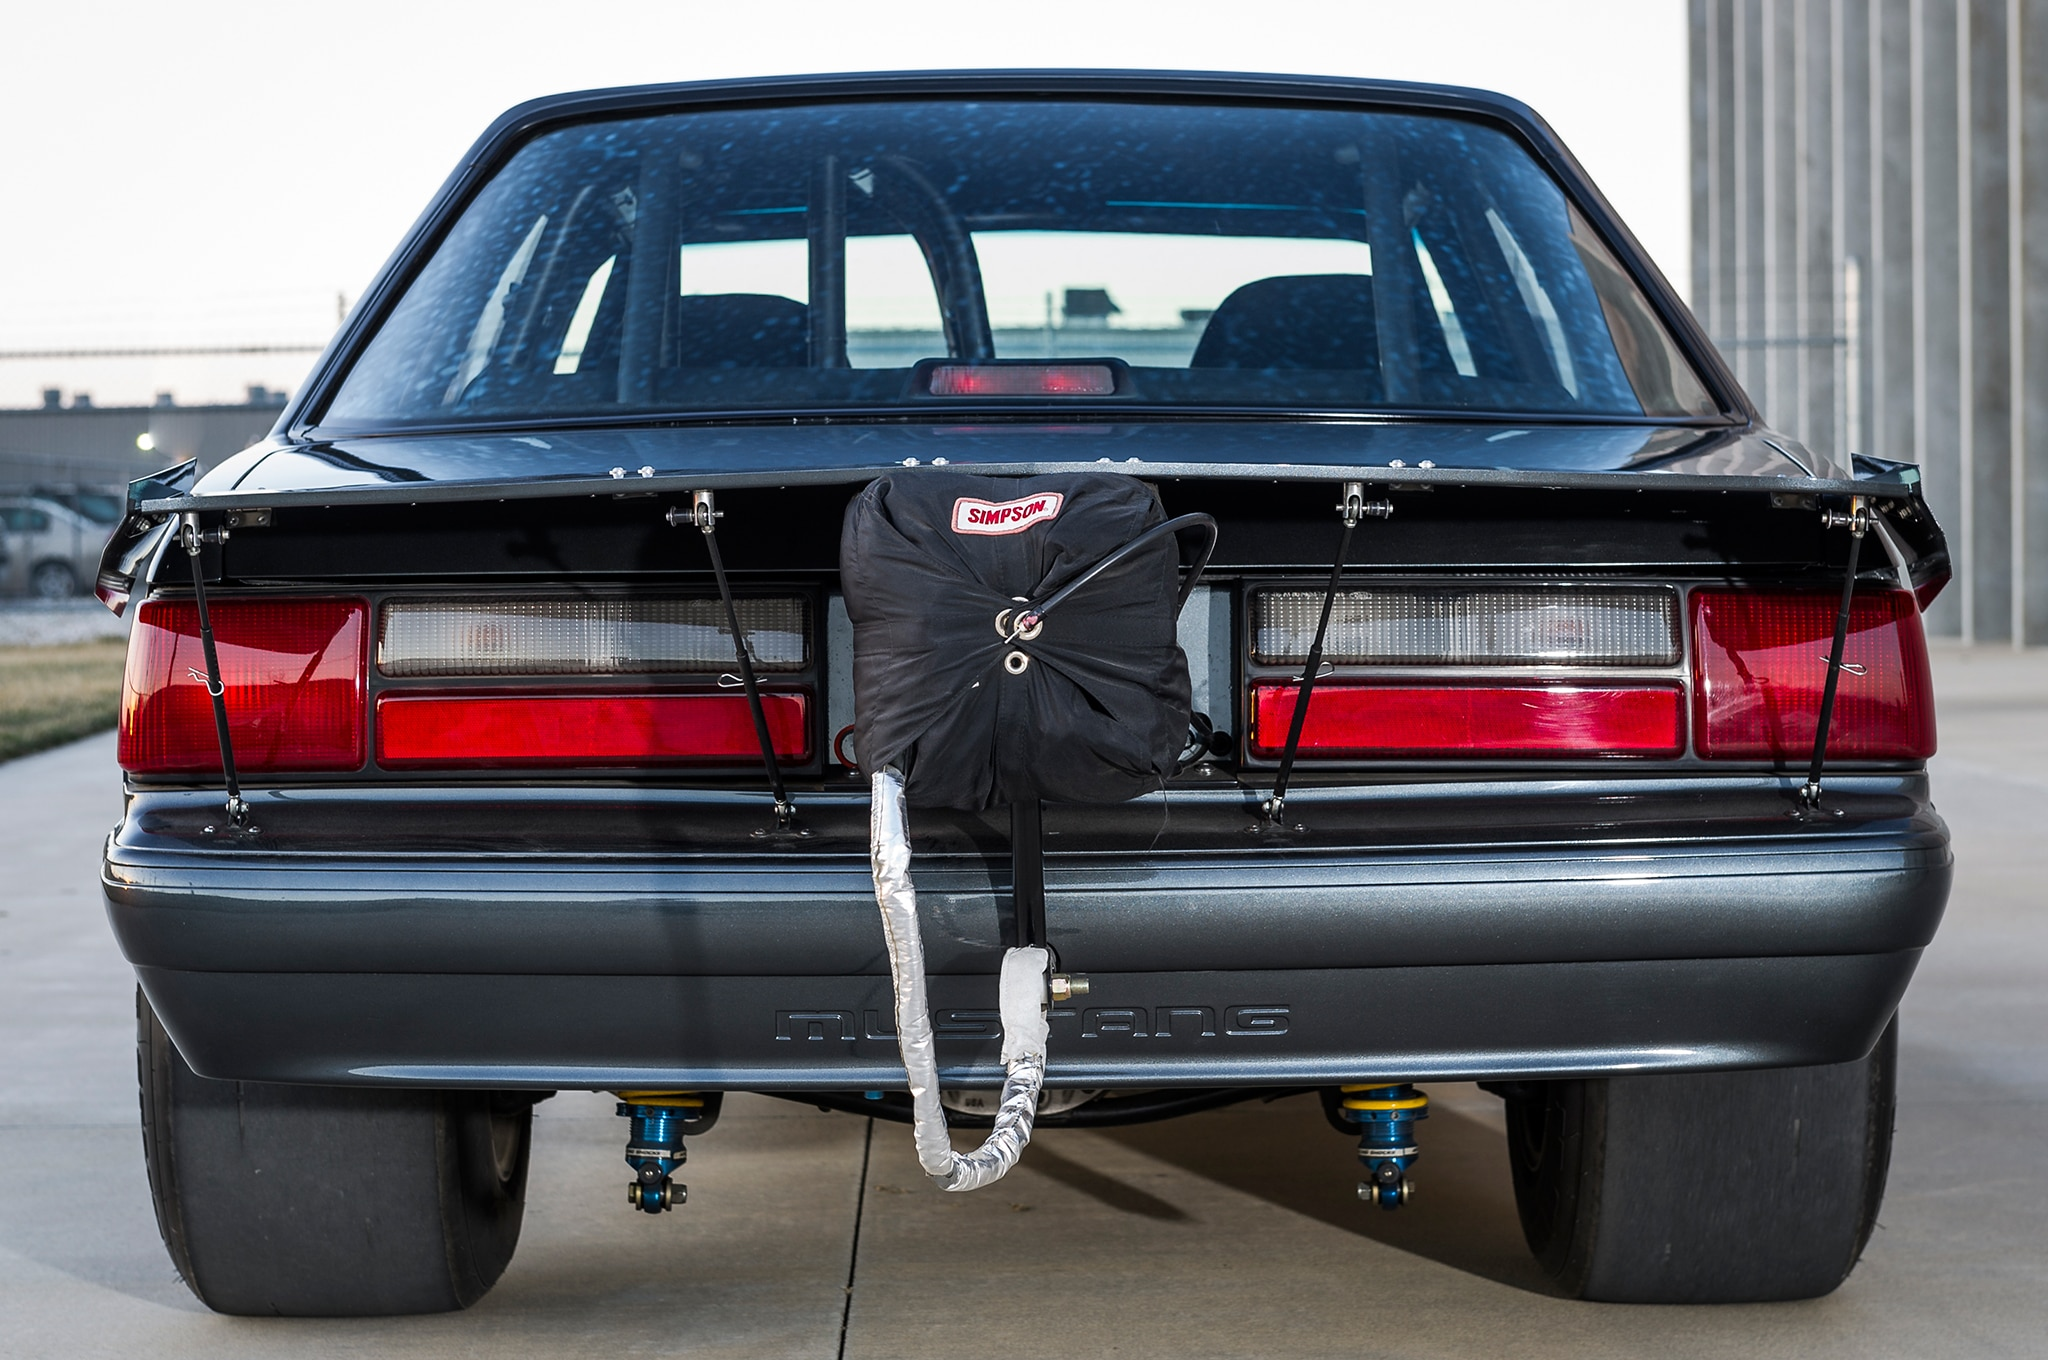 1989 Ford Mustang Coupe Taillights